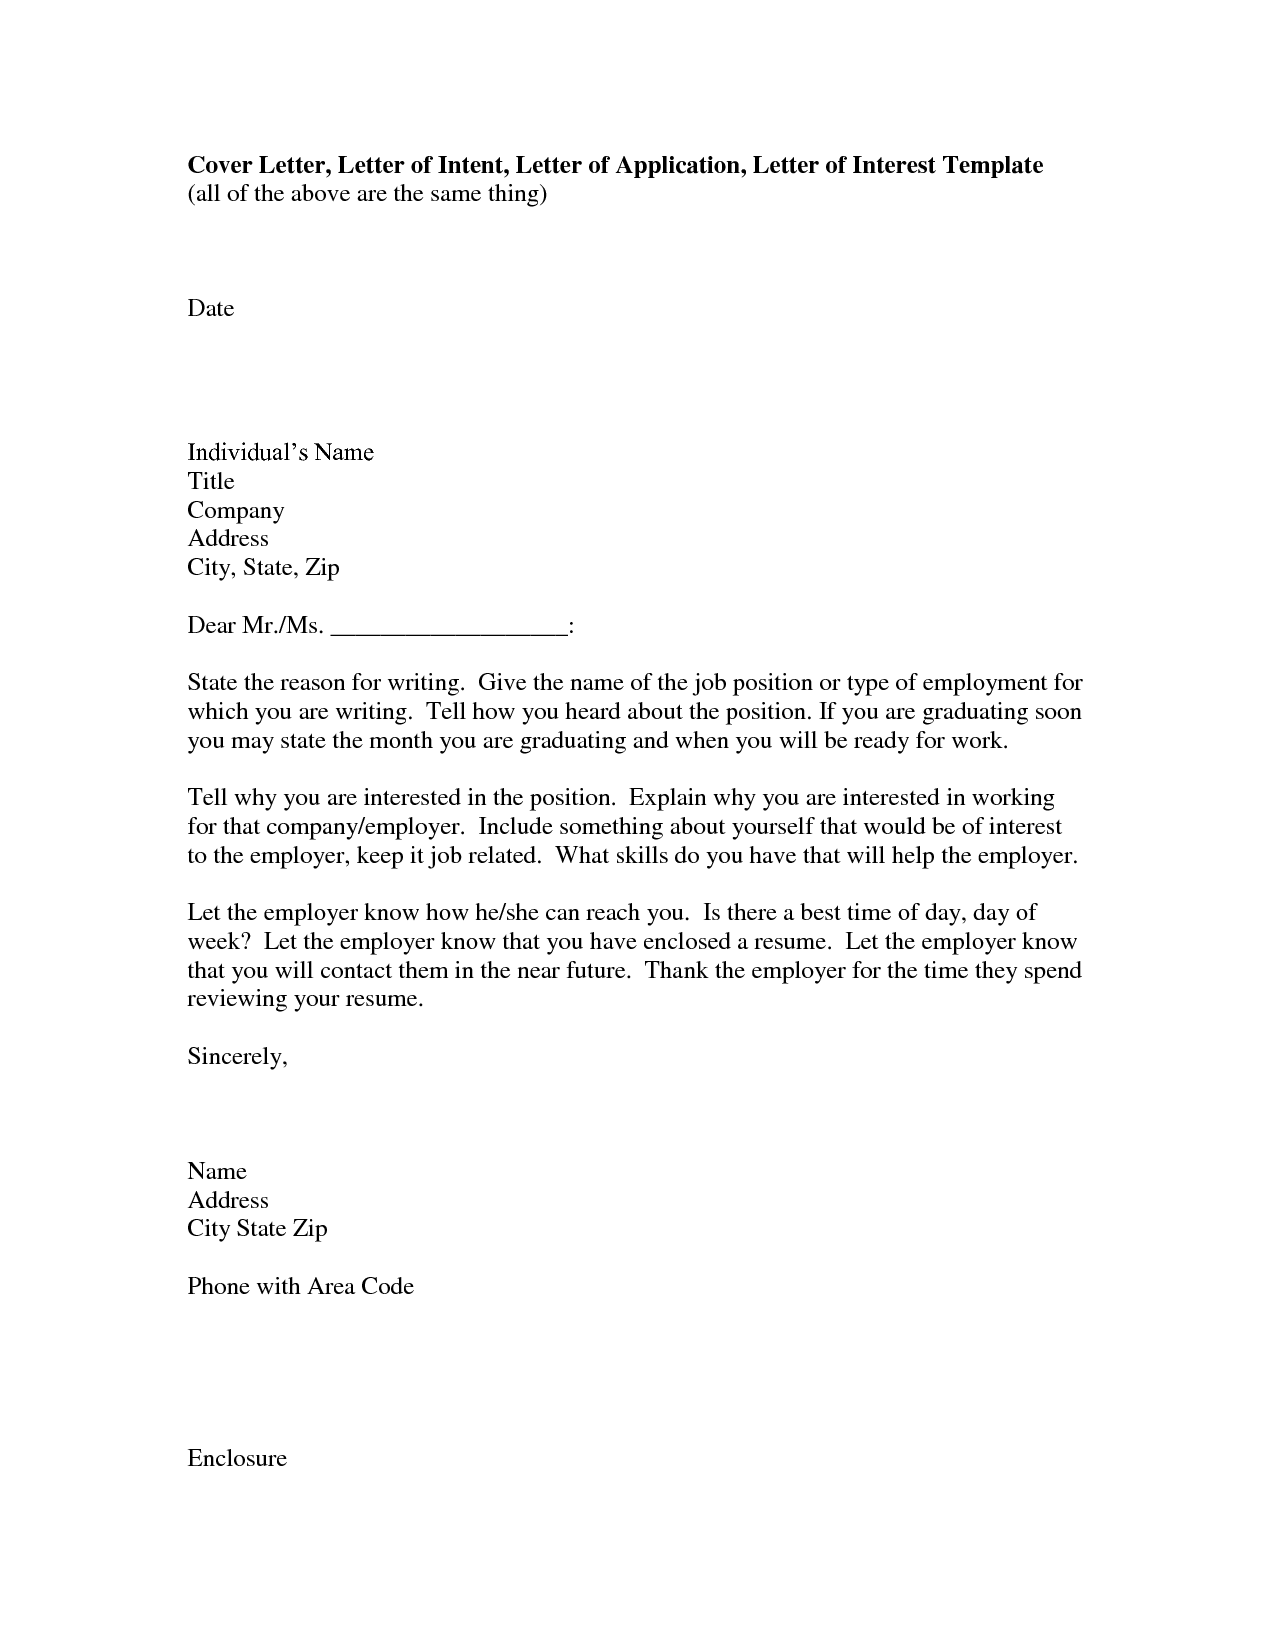 Open Office Cover Letter Template Download - http://www.resumecare ...